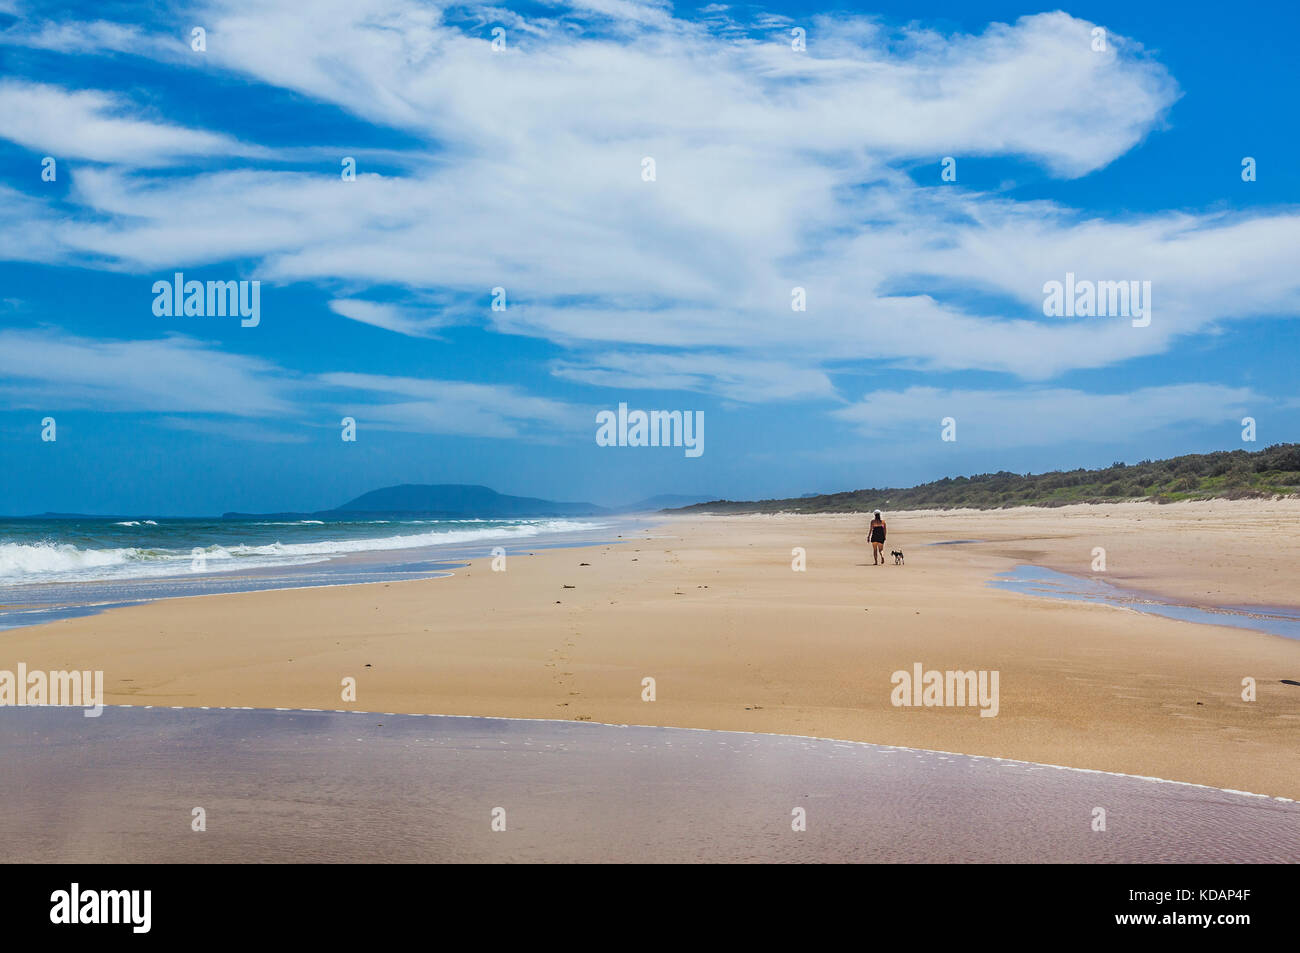 Australia, New South Wales, Mid North Coast, Port Macquarie, Lighthouse Beach - Stock Image